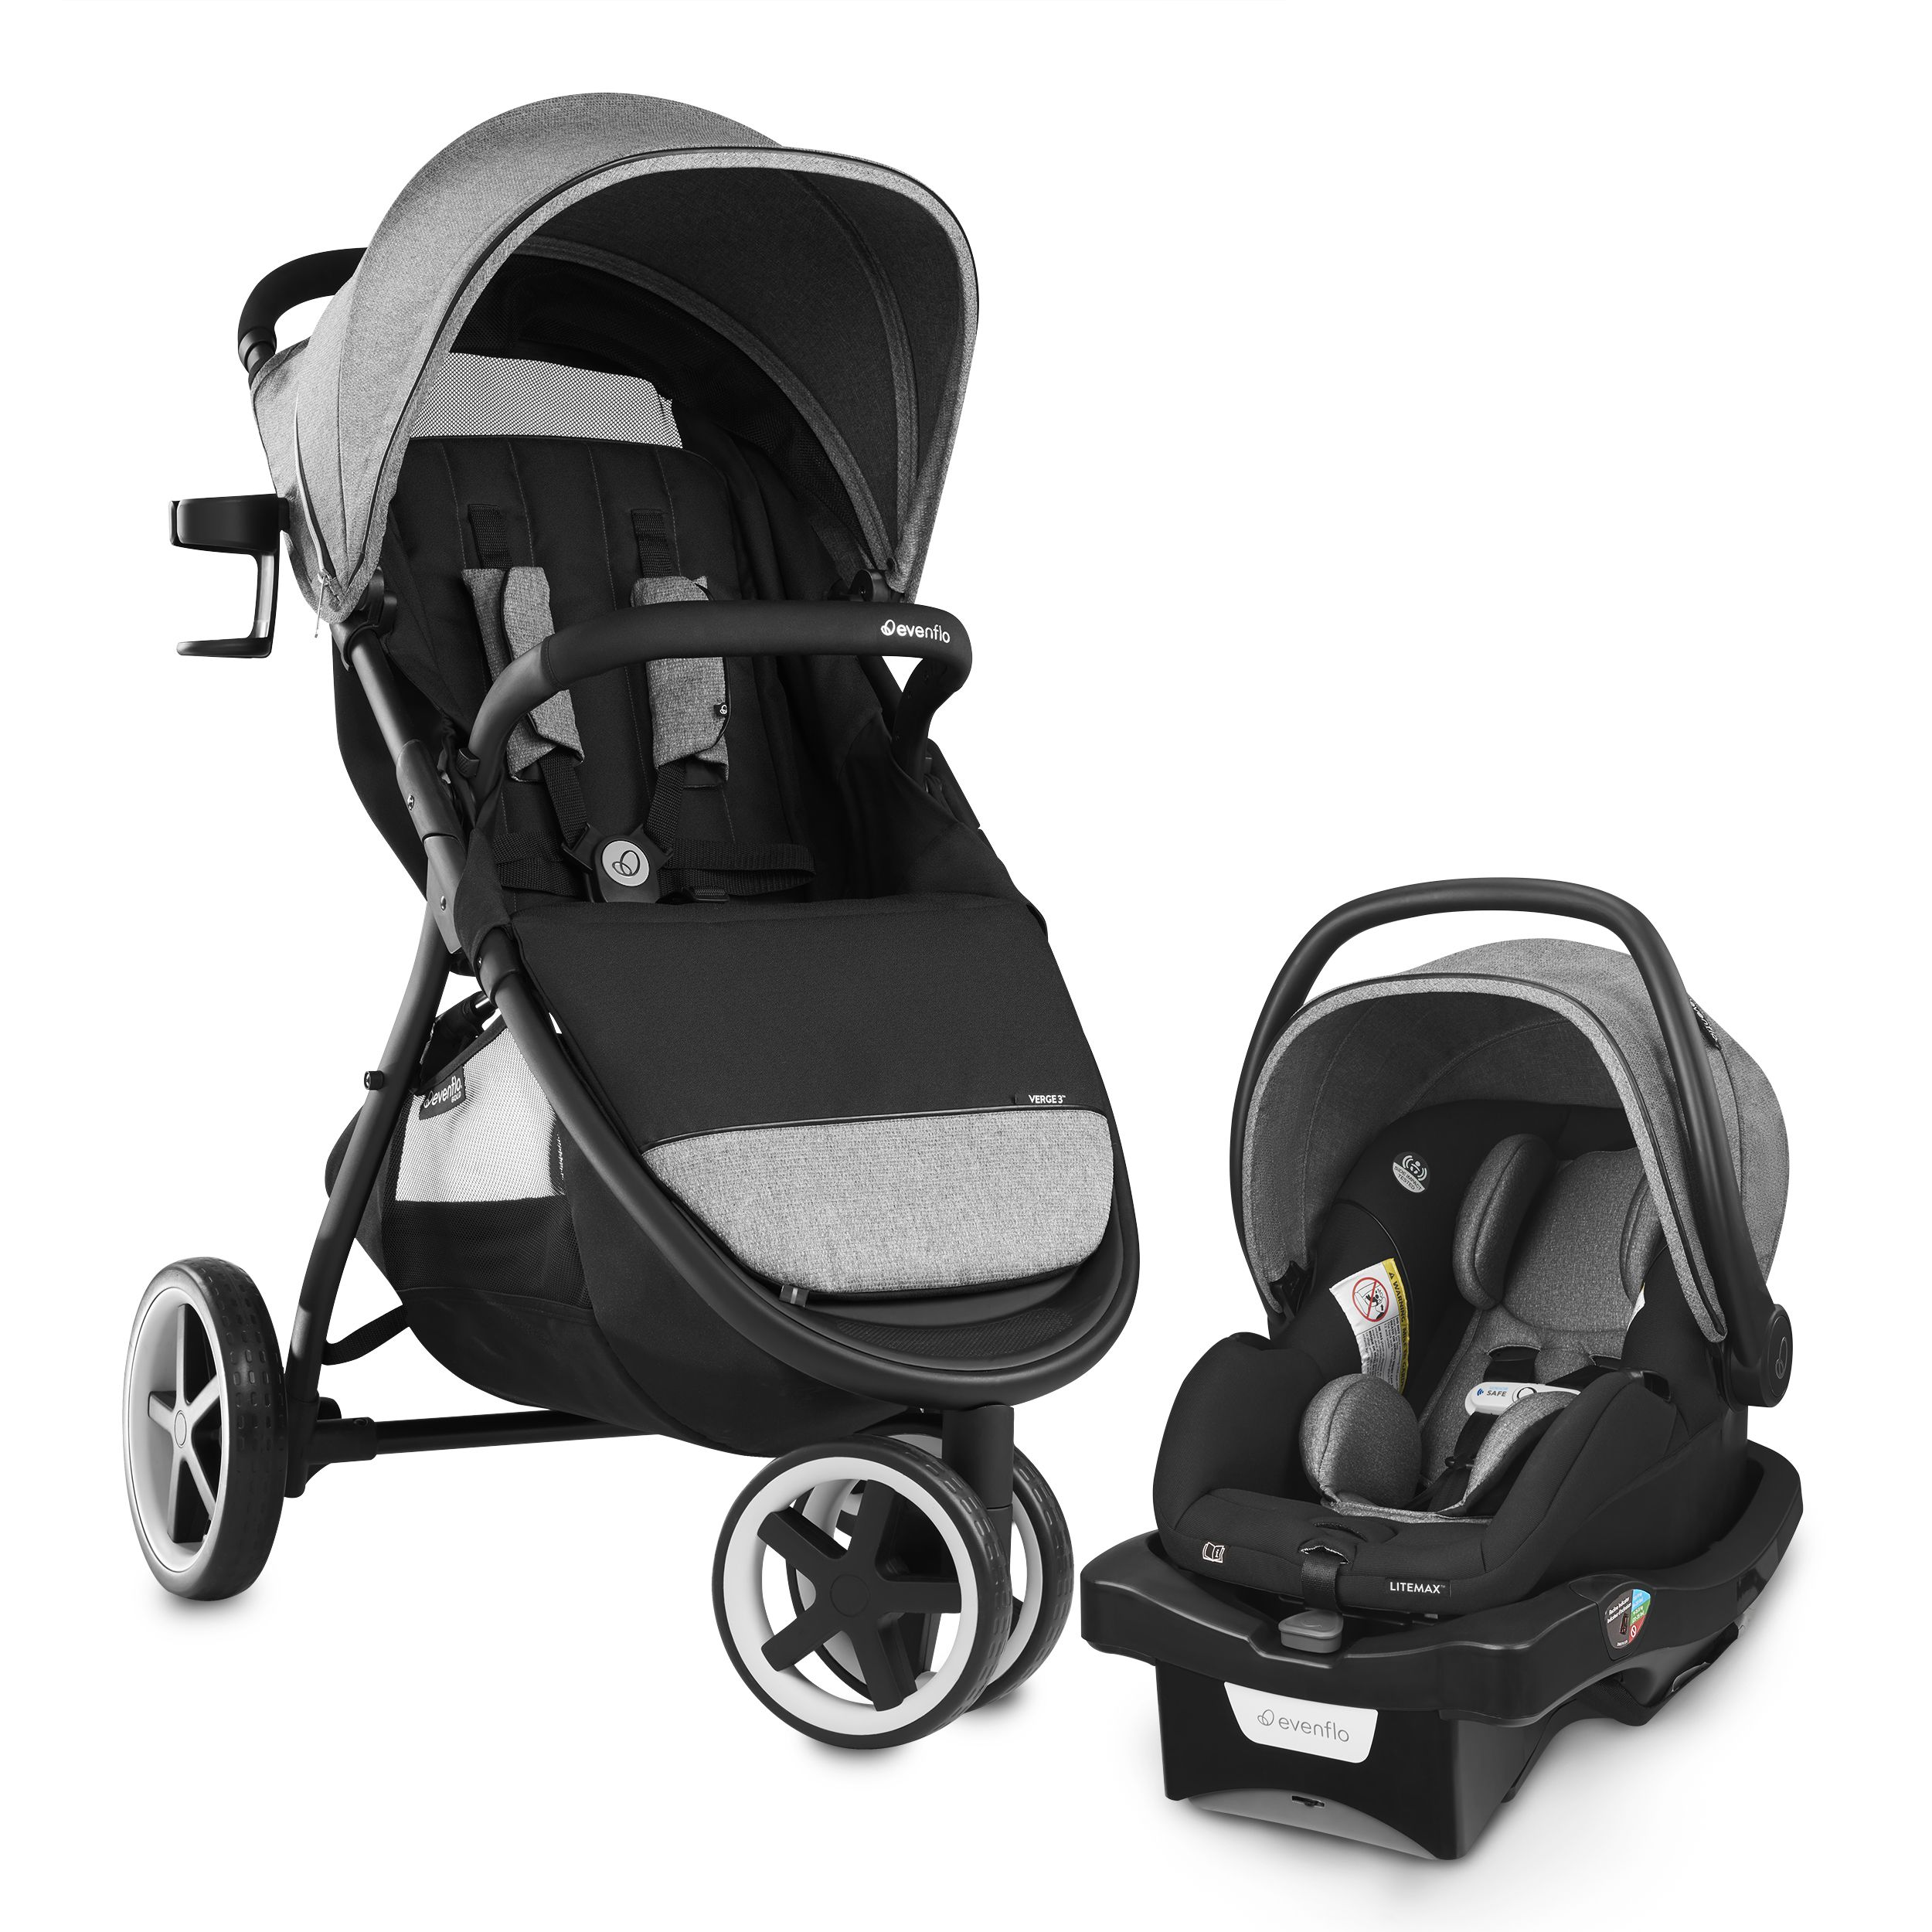 Chicco KeyFit Plus Infant Car Seat from Beba Baby Hire